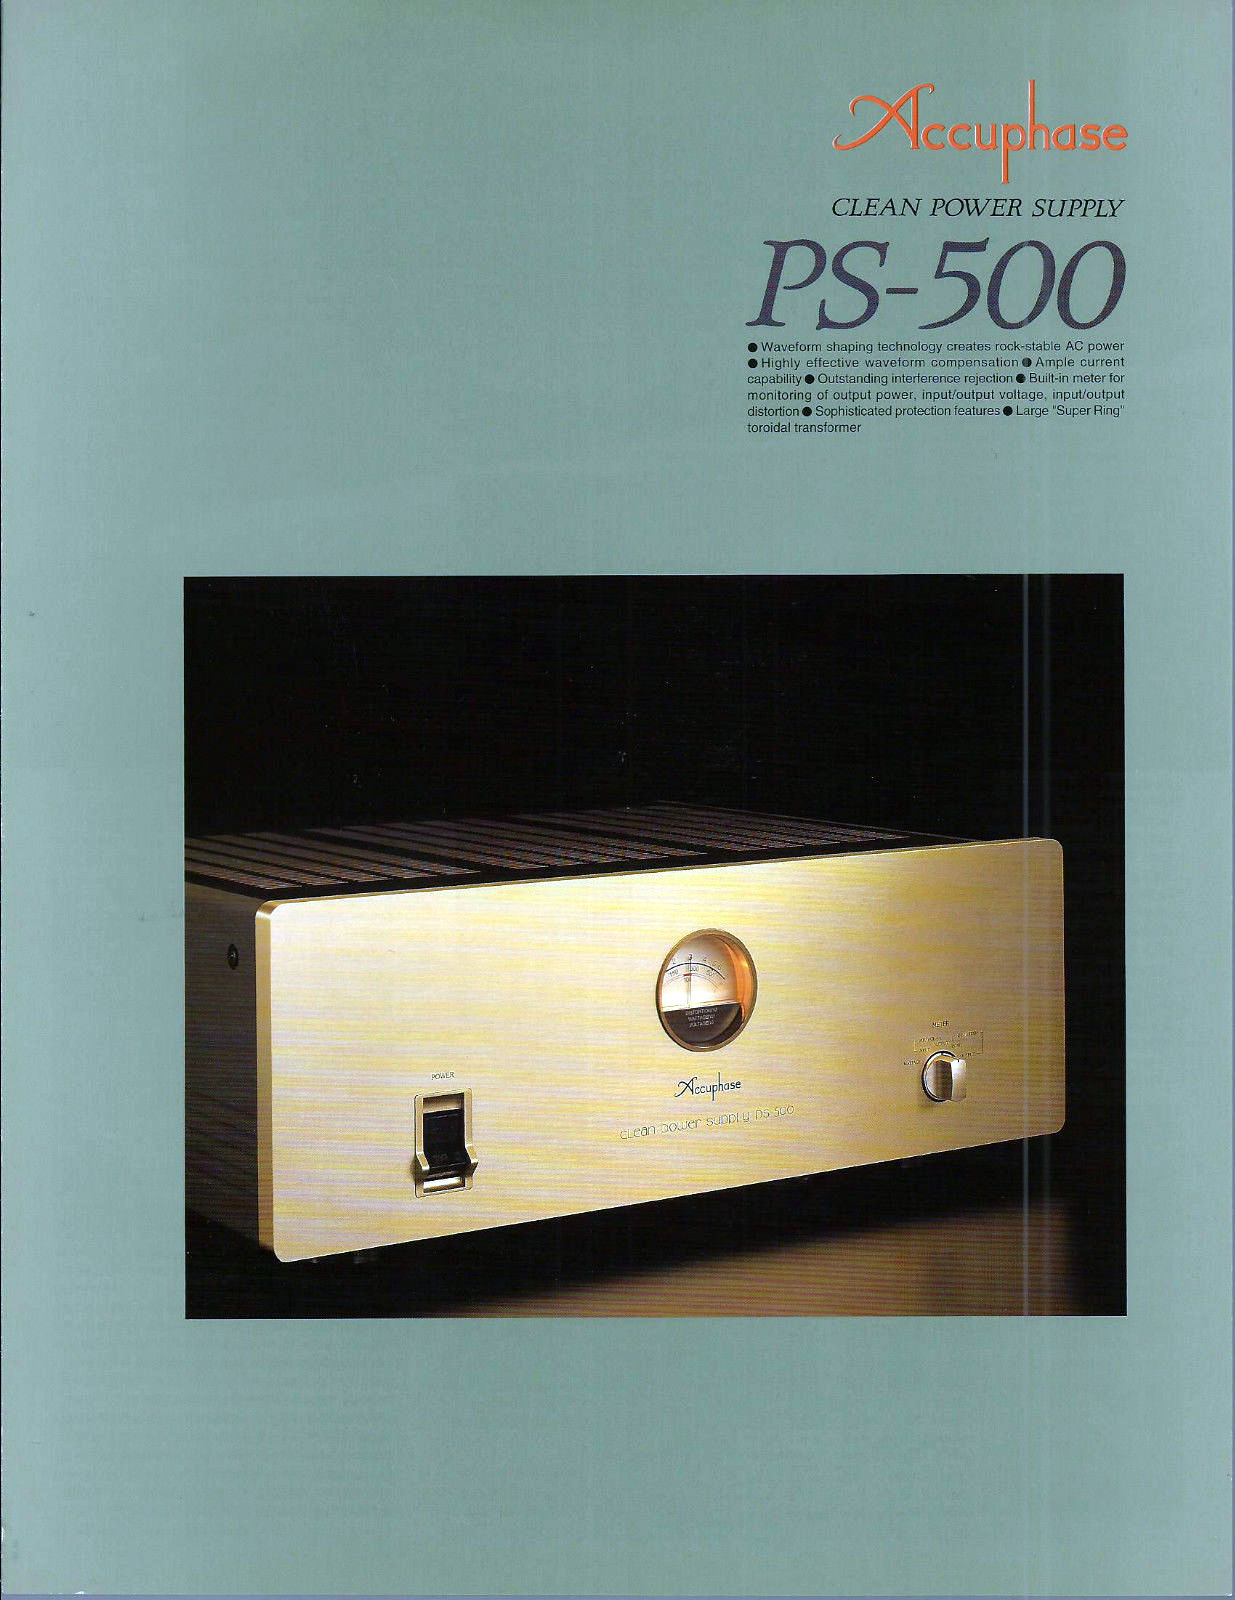 Accuphase PS-500-Prospekt-1.jpg